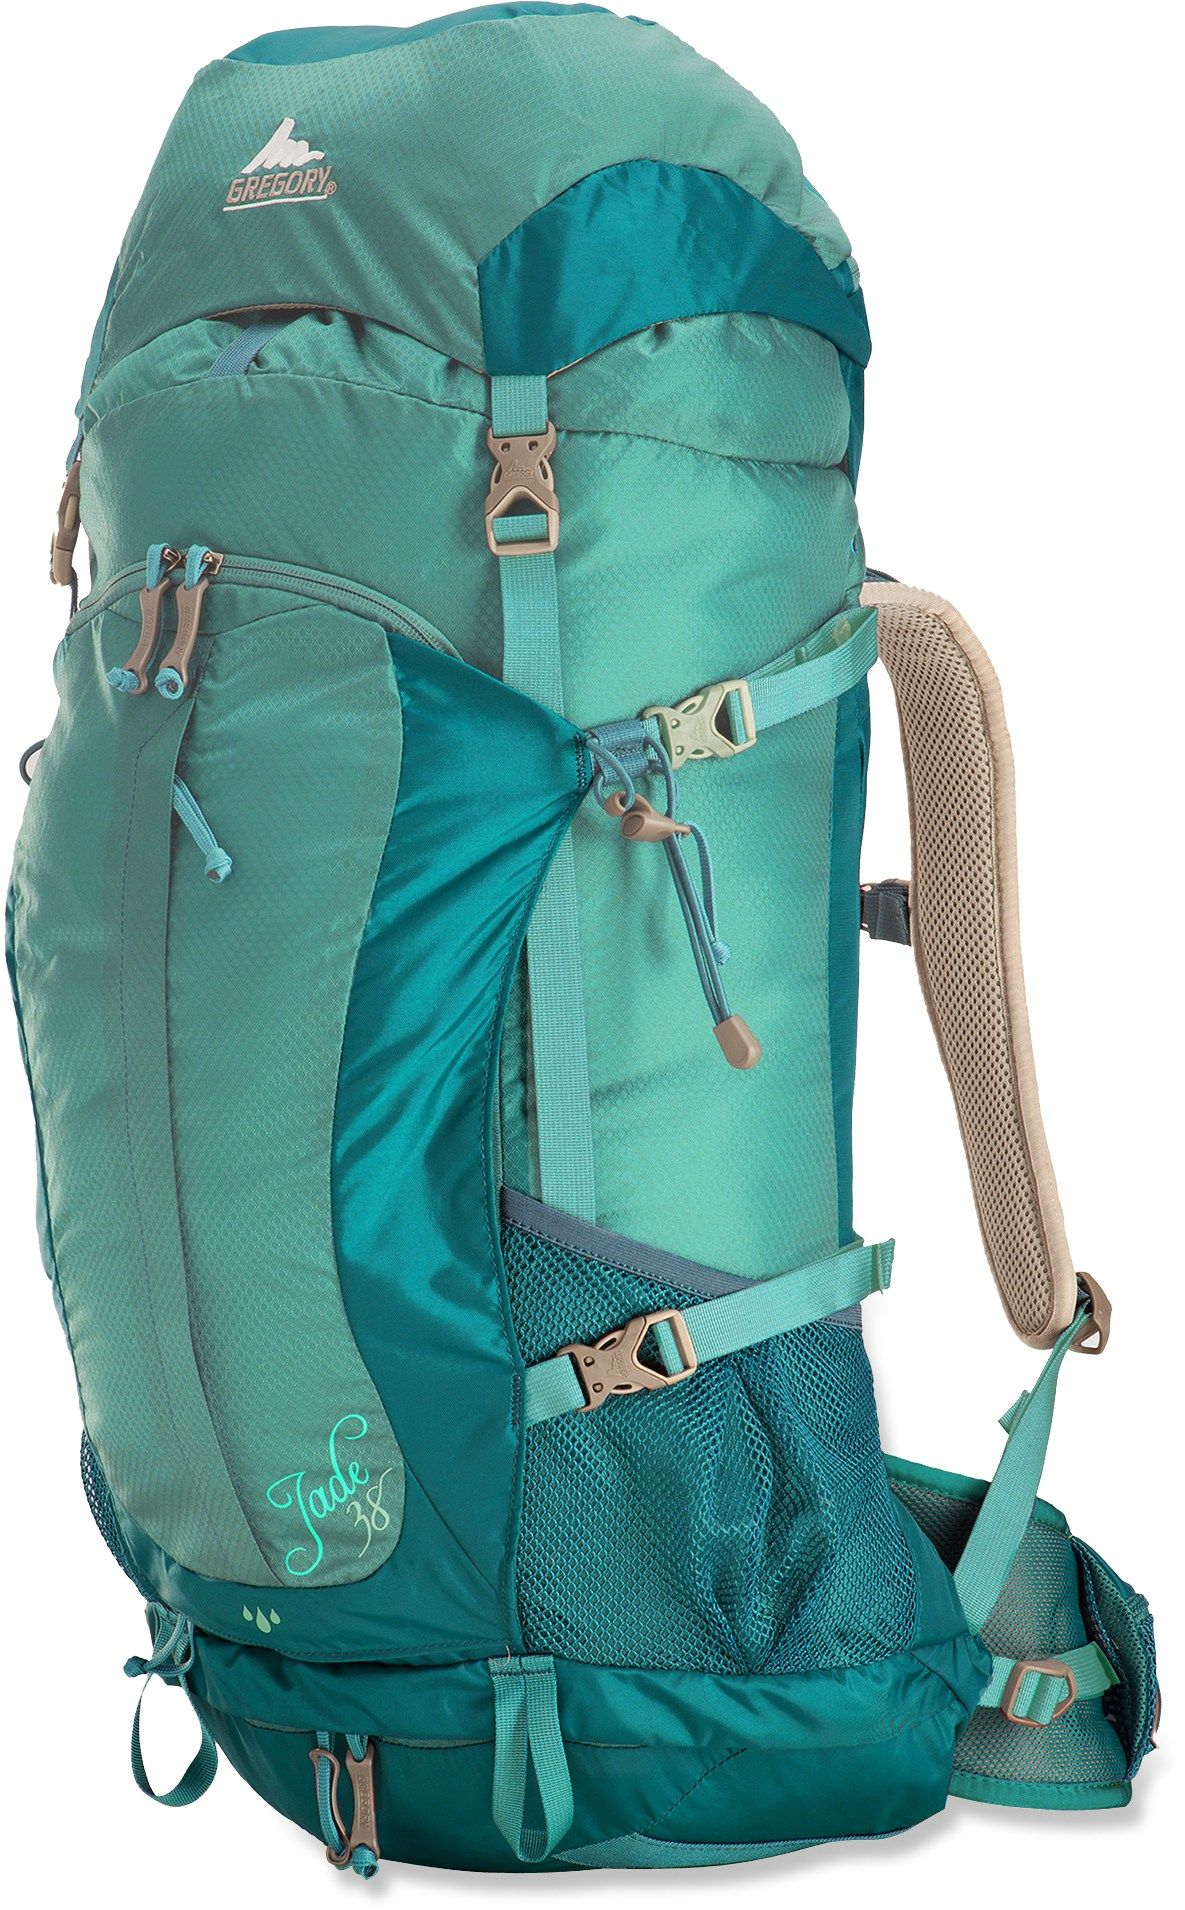 Gregory Jade 38 Pack - Women's, from REI. My hiking backpack for ...